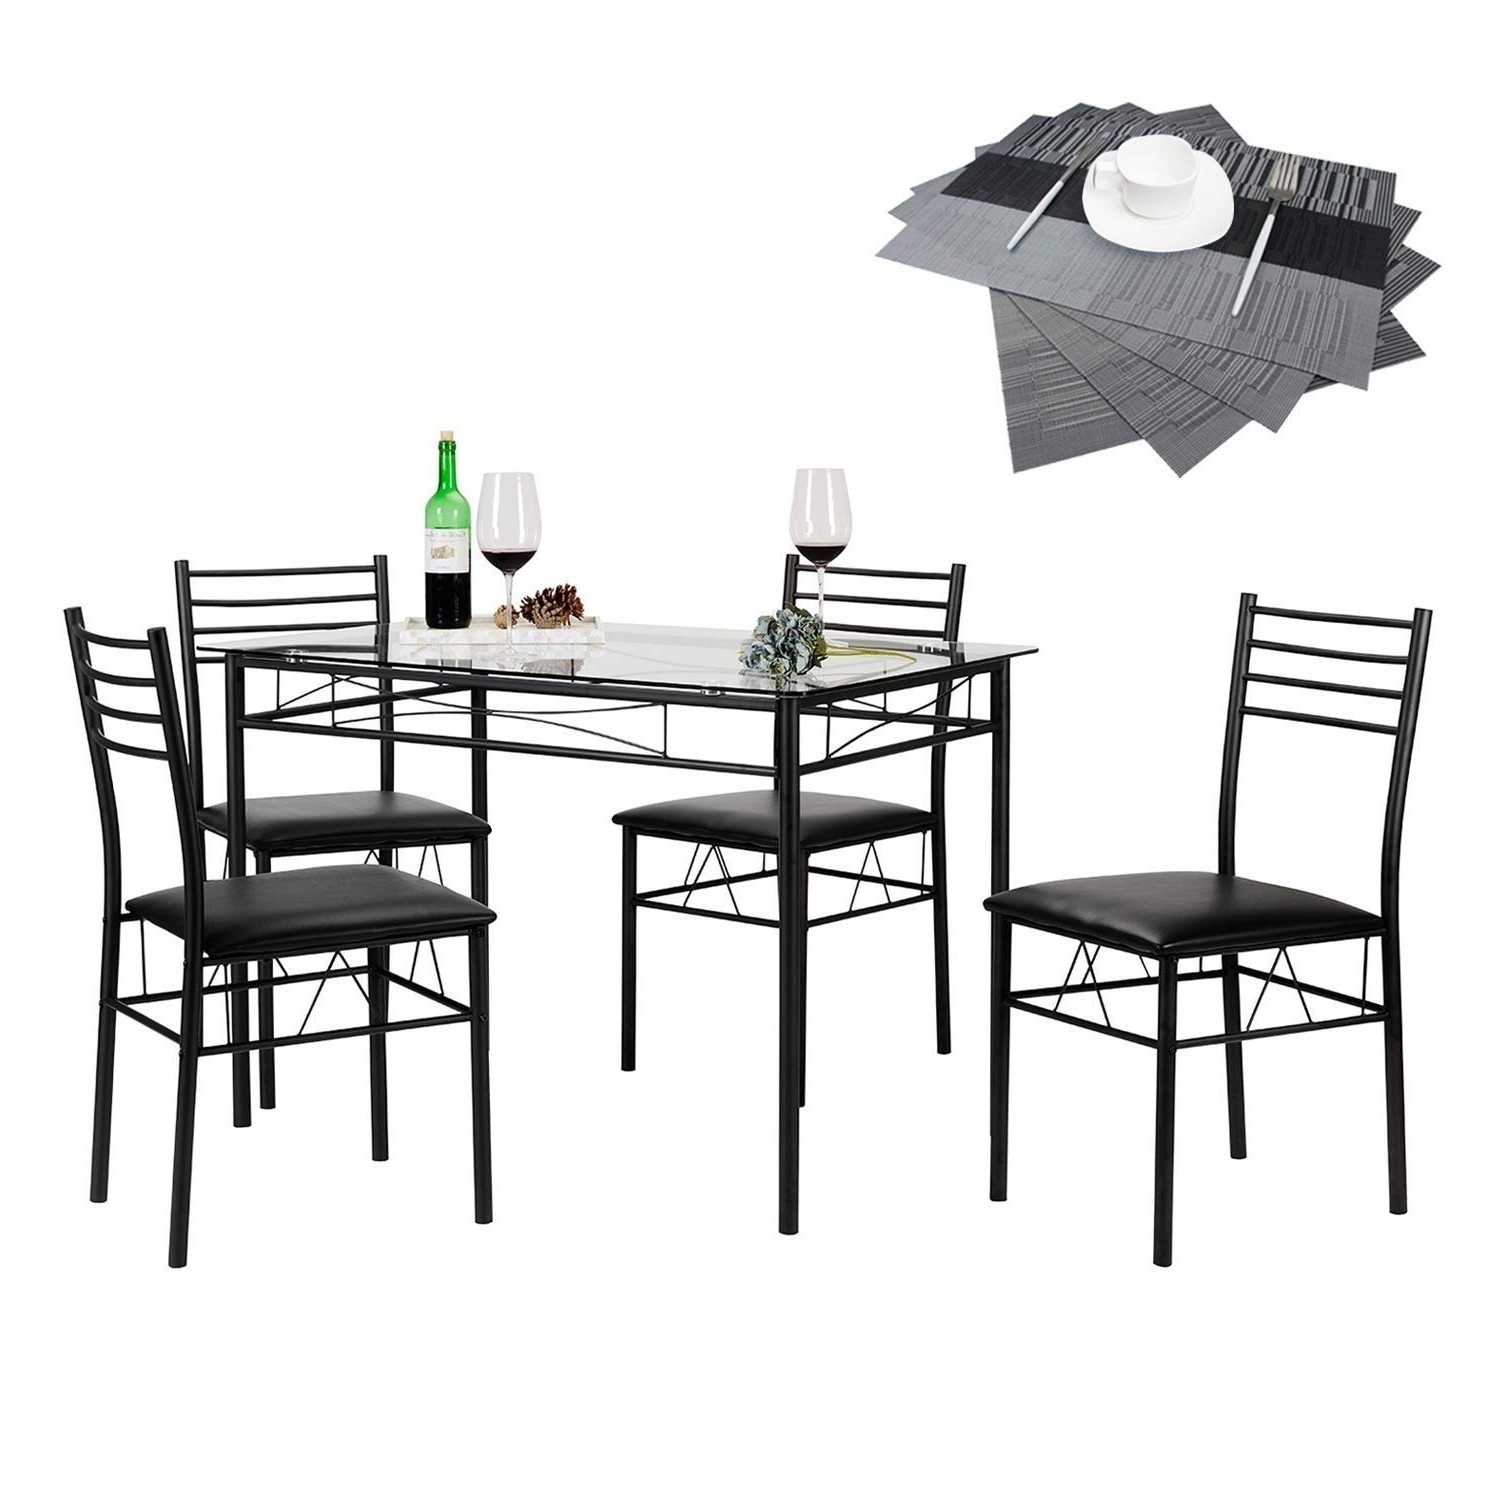 Shop Vecelo Glass Dining Table Set With 4 Chairs Kitchen Table Set Throughout Favorite Glass Dining Tables (View 21 of 25)